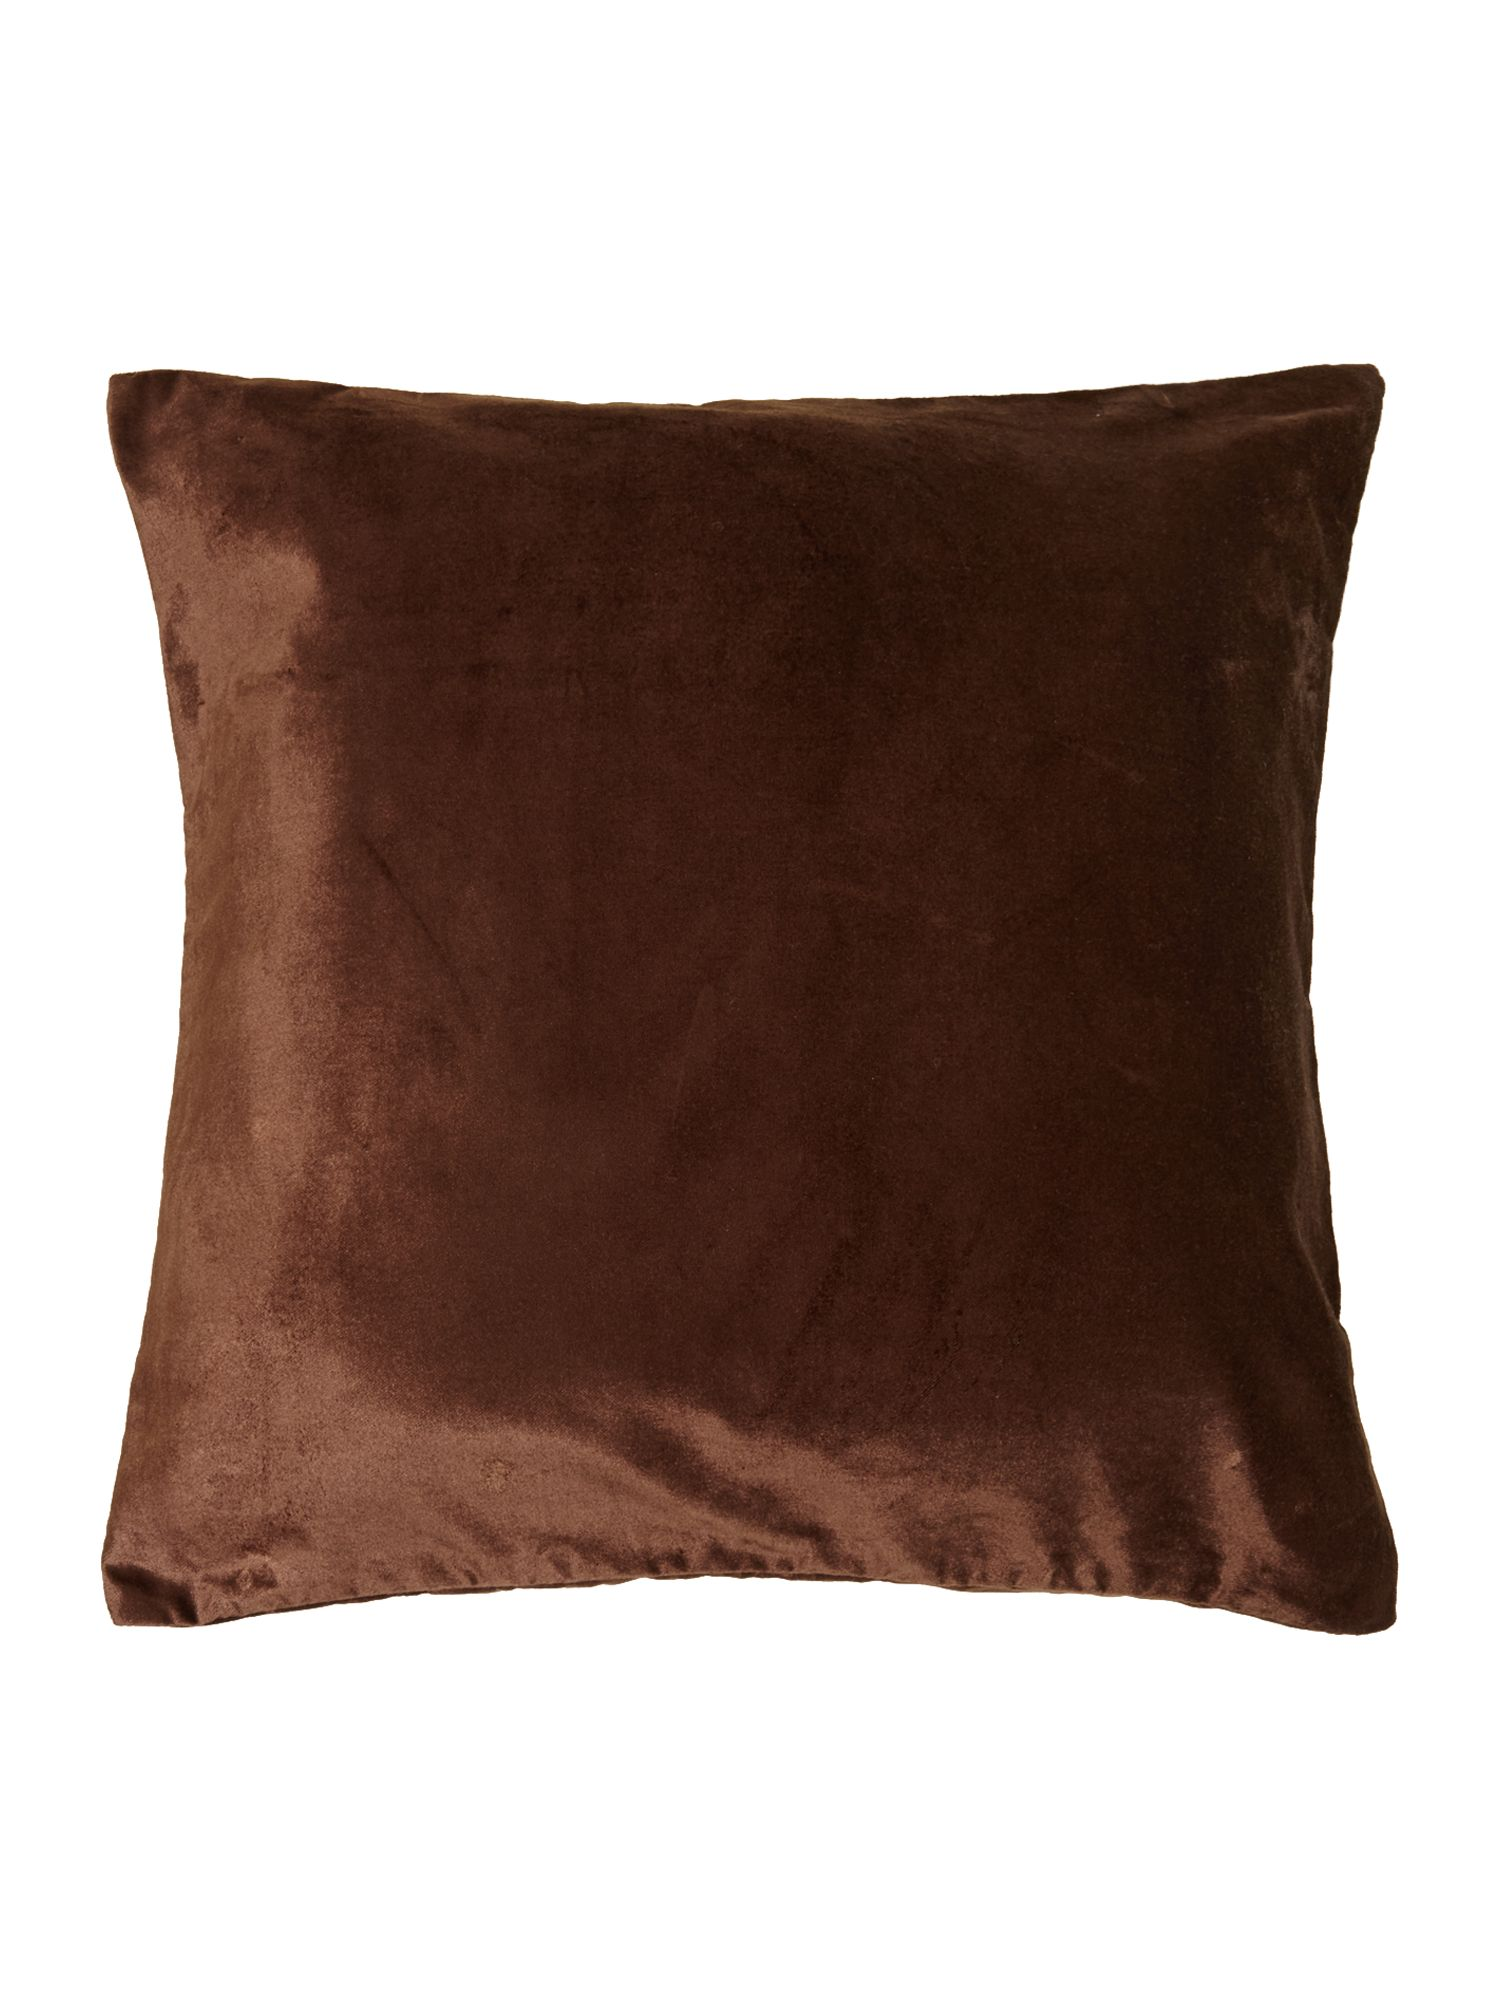 Chocolate oversized velvet cushion